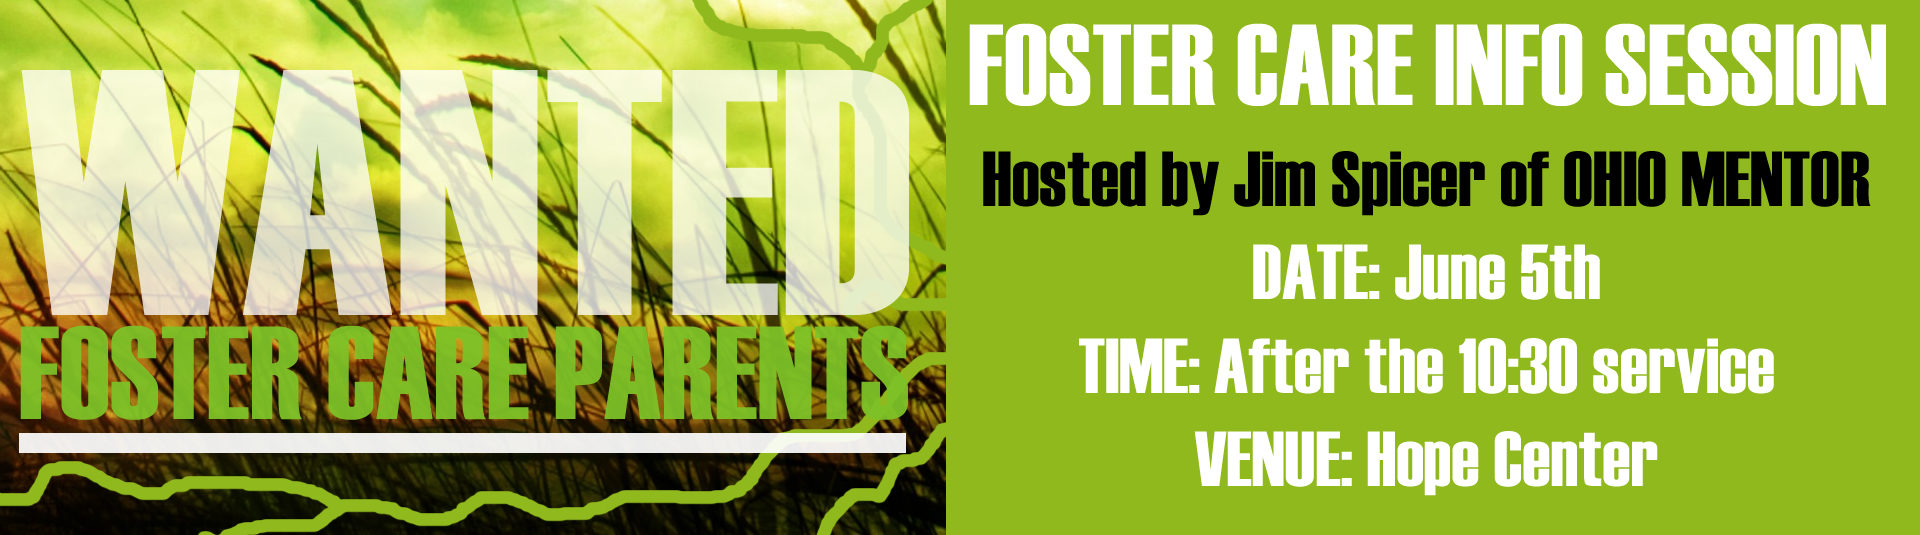 Foster Care Infor Session